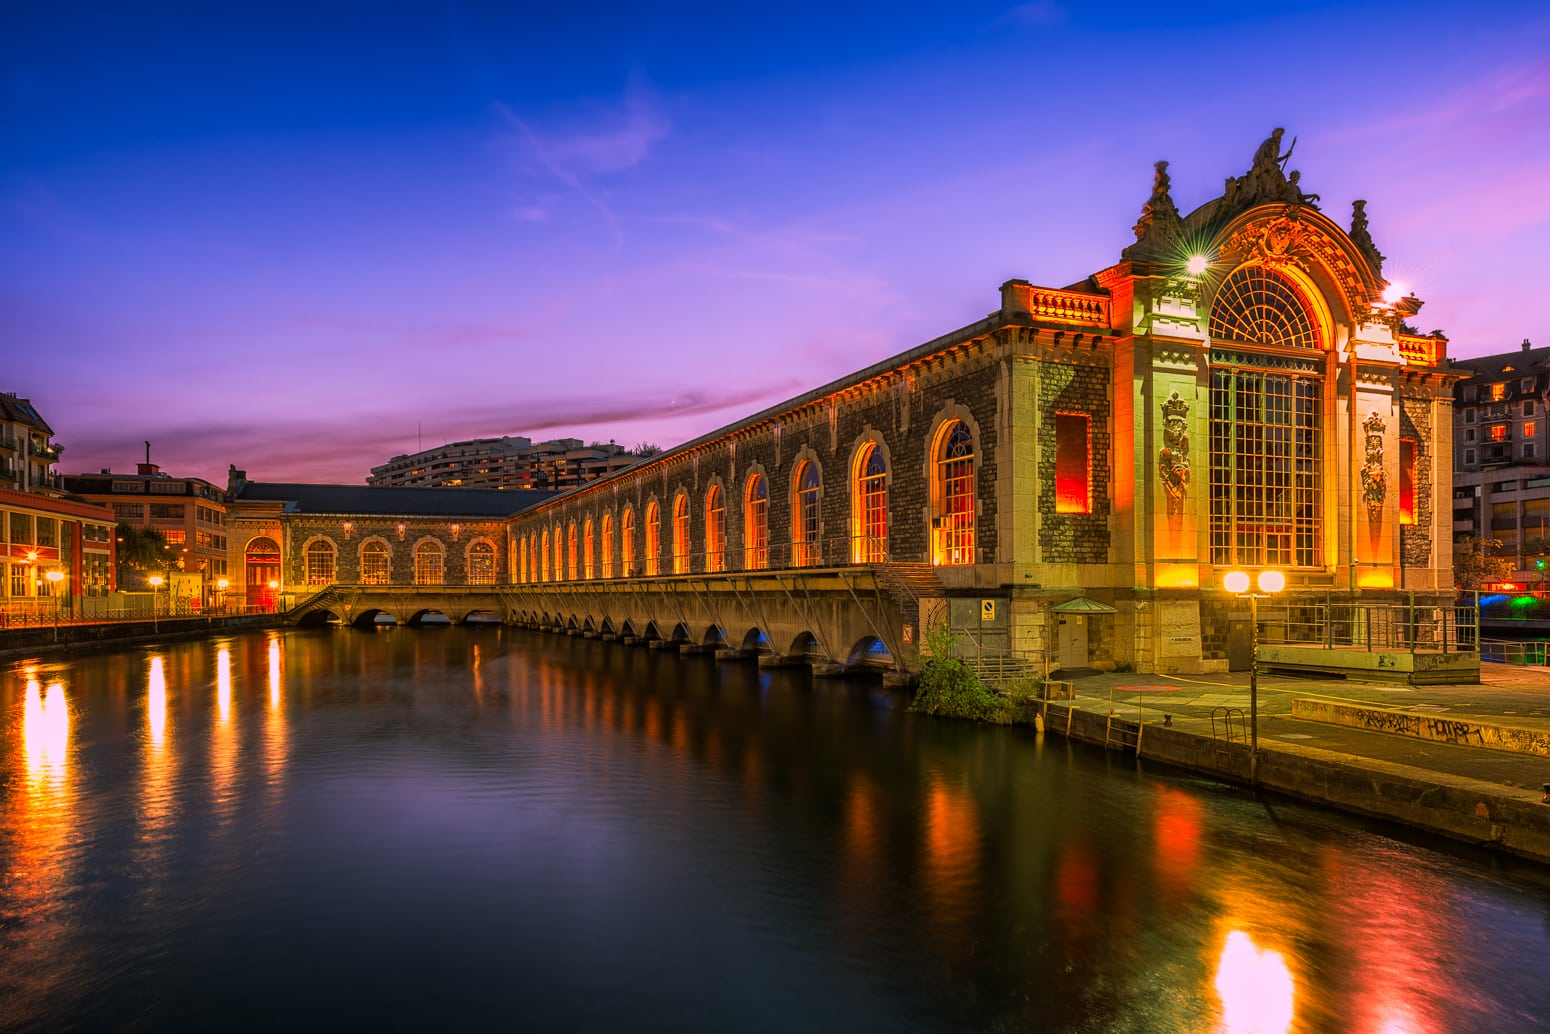 The Bâtiment des Forces Motrices BFM in Geneva, Switzerland in the midst of the river Rhône at night.